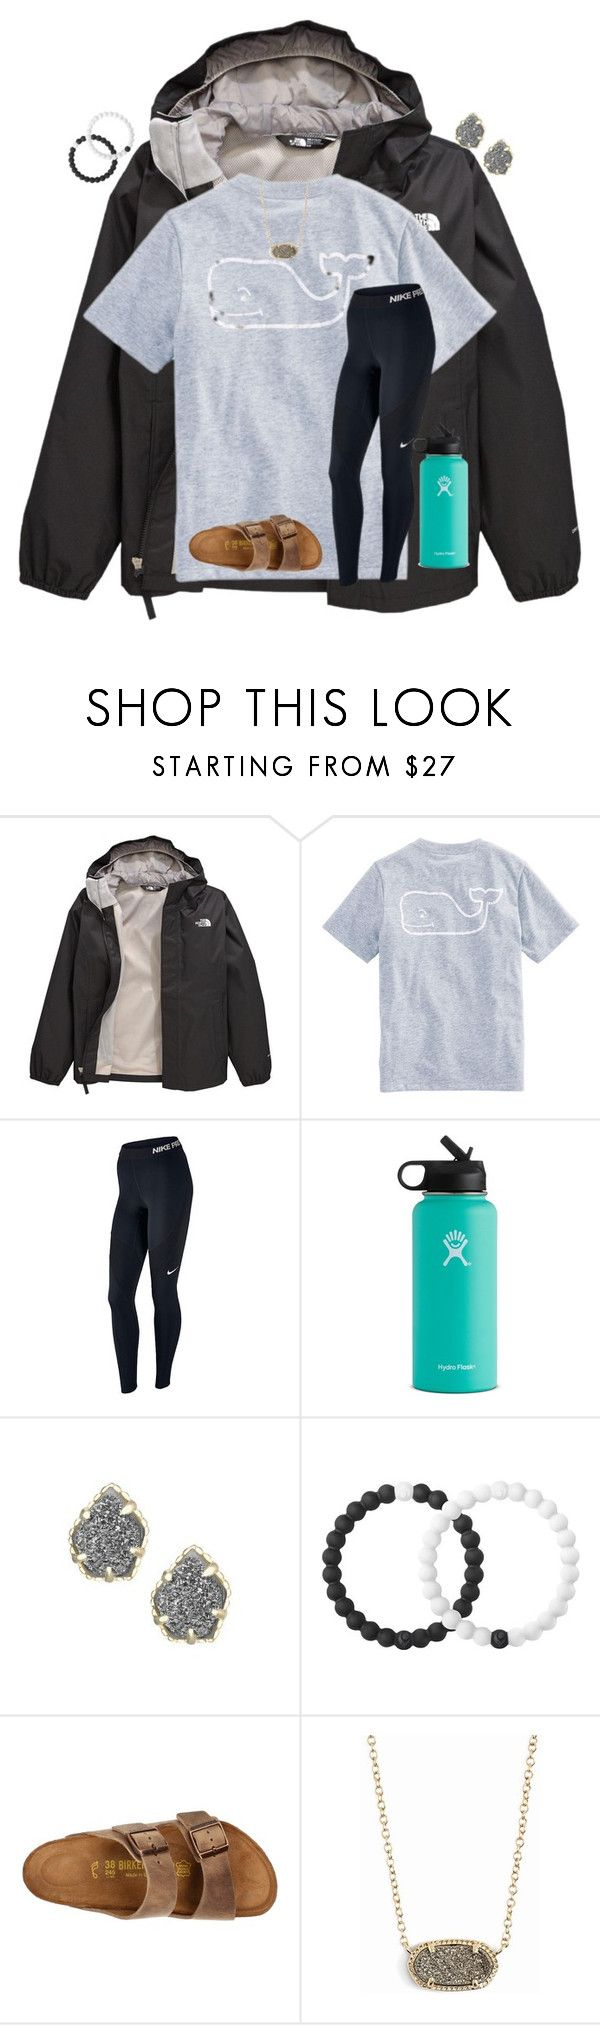 """""""good friday came in clutch ✌"""" by preppy-renee ❤ liked on Polyvore featuring The North Face, Vineyard Vines, NIKE, Hydro Flask, Kendra Scott, Lokai and Birkenstock"""